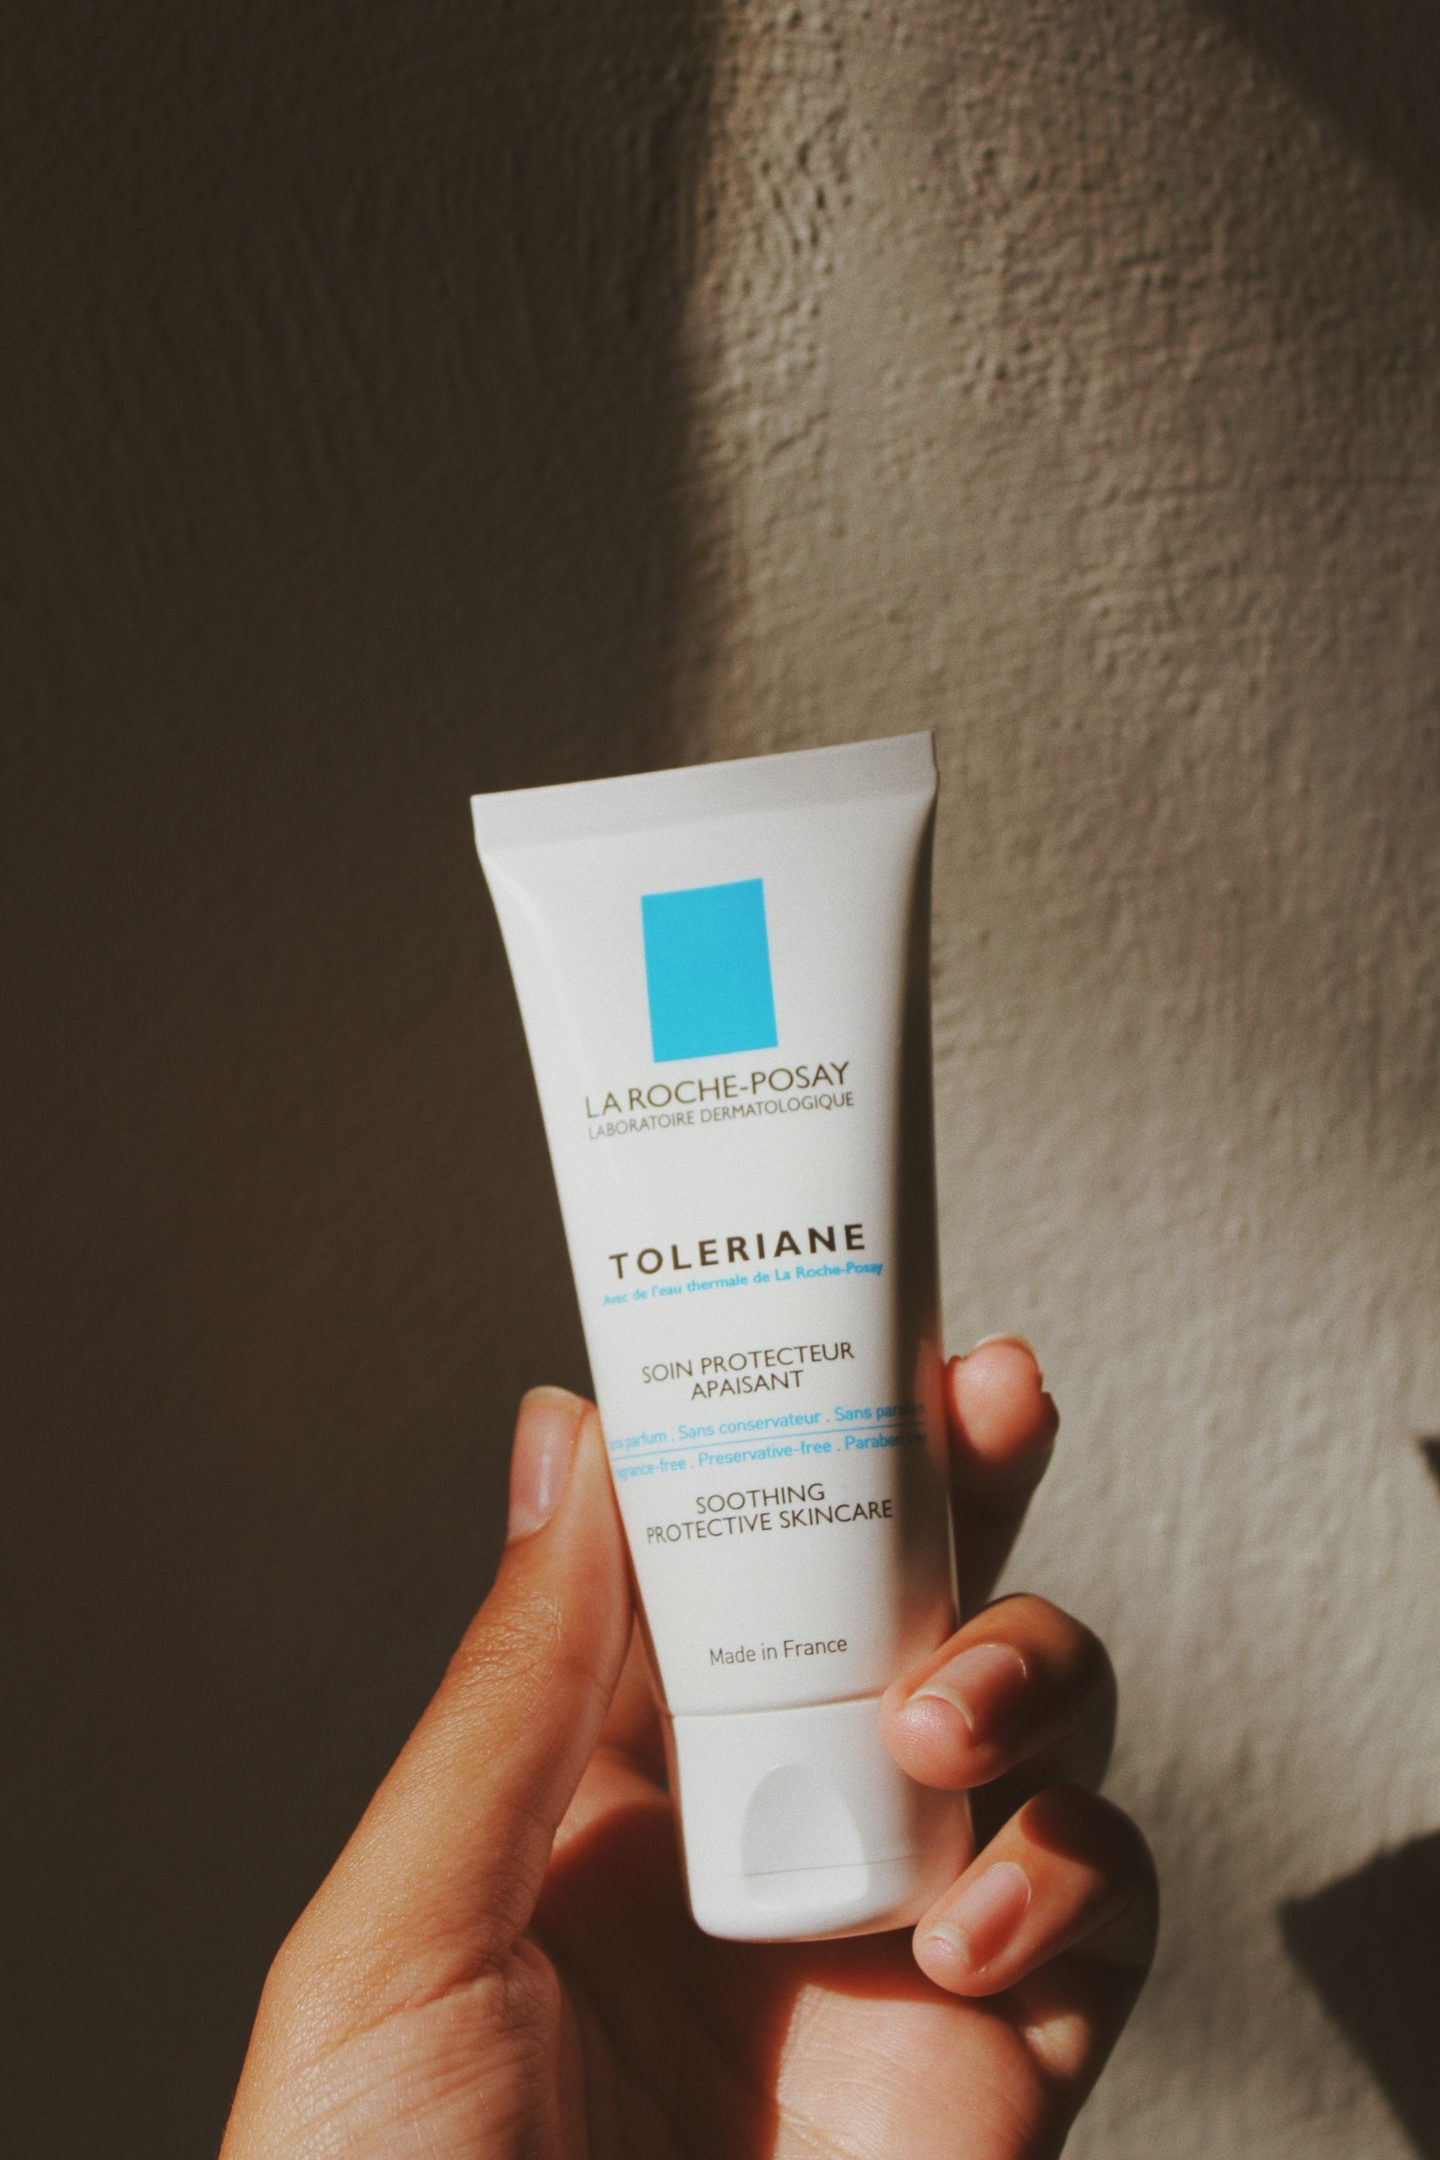 Toleriane Cream held in a hand against a wall